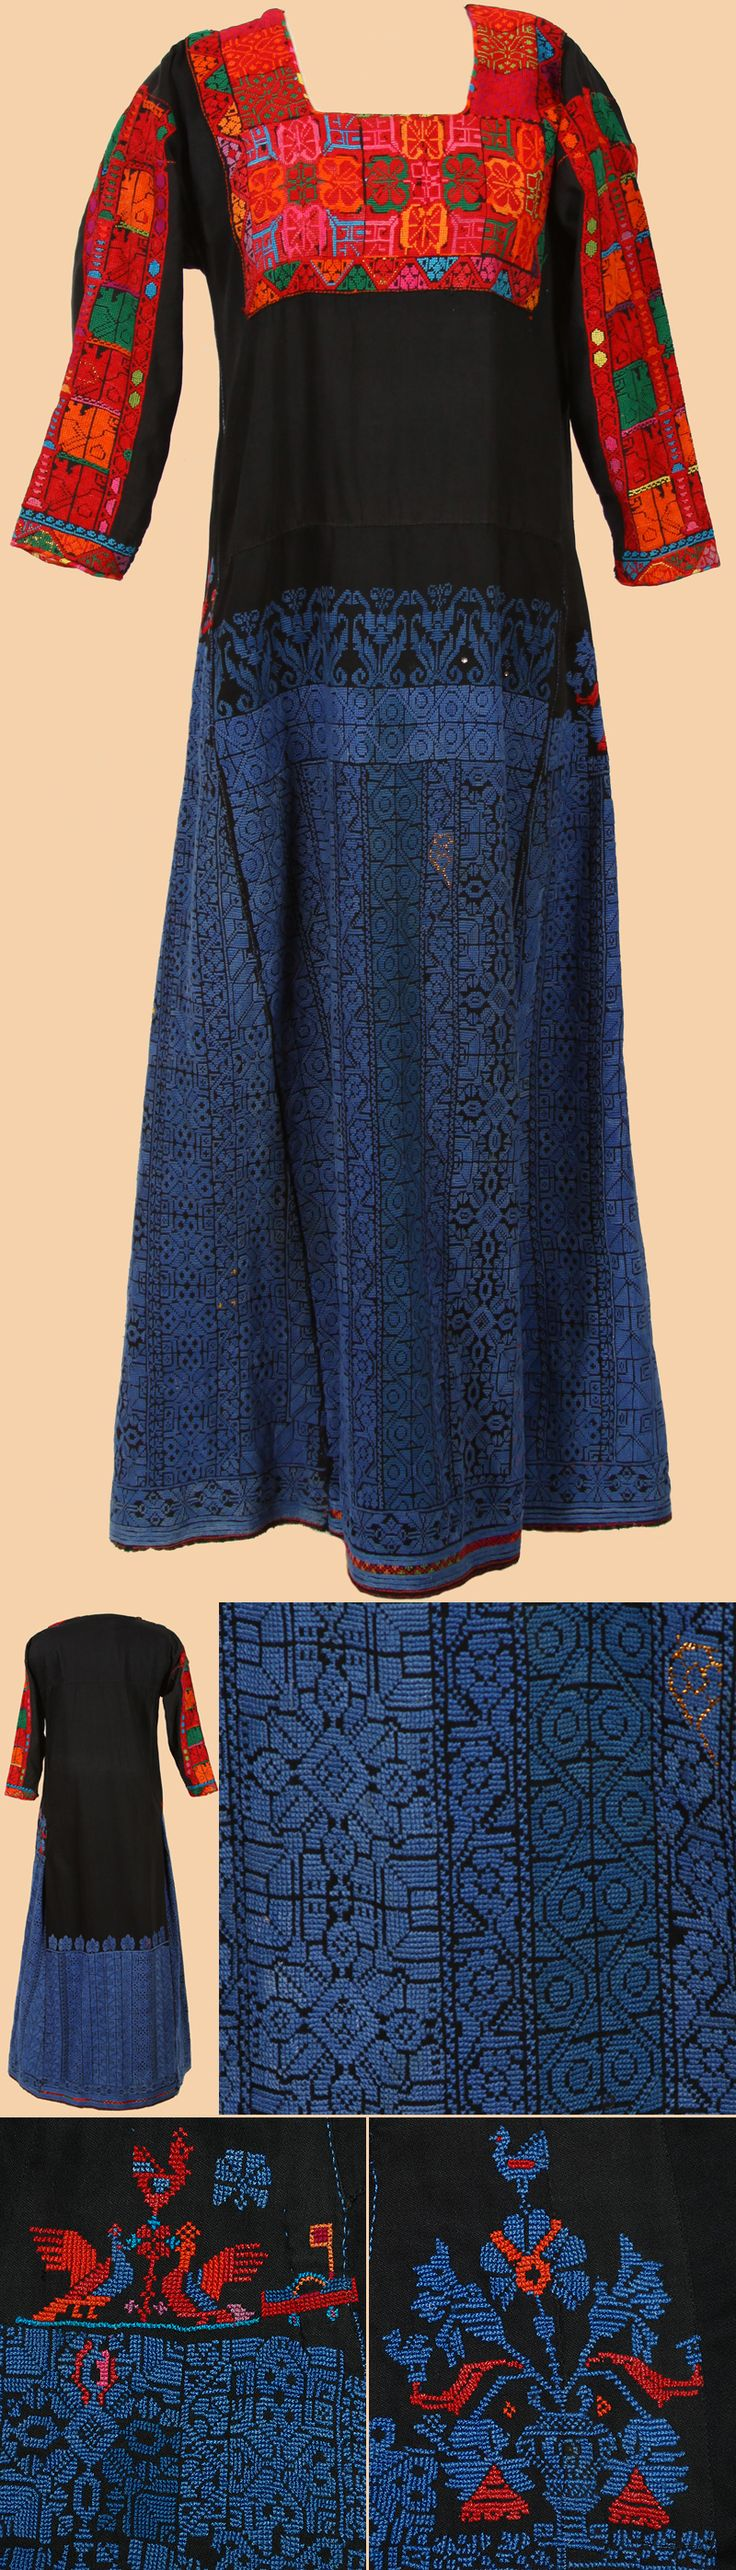 Palestinian embroidery dress and on